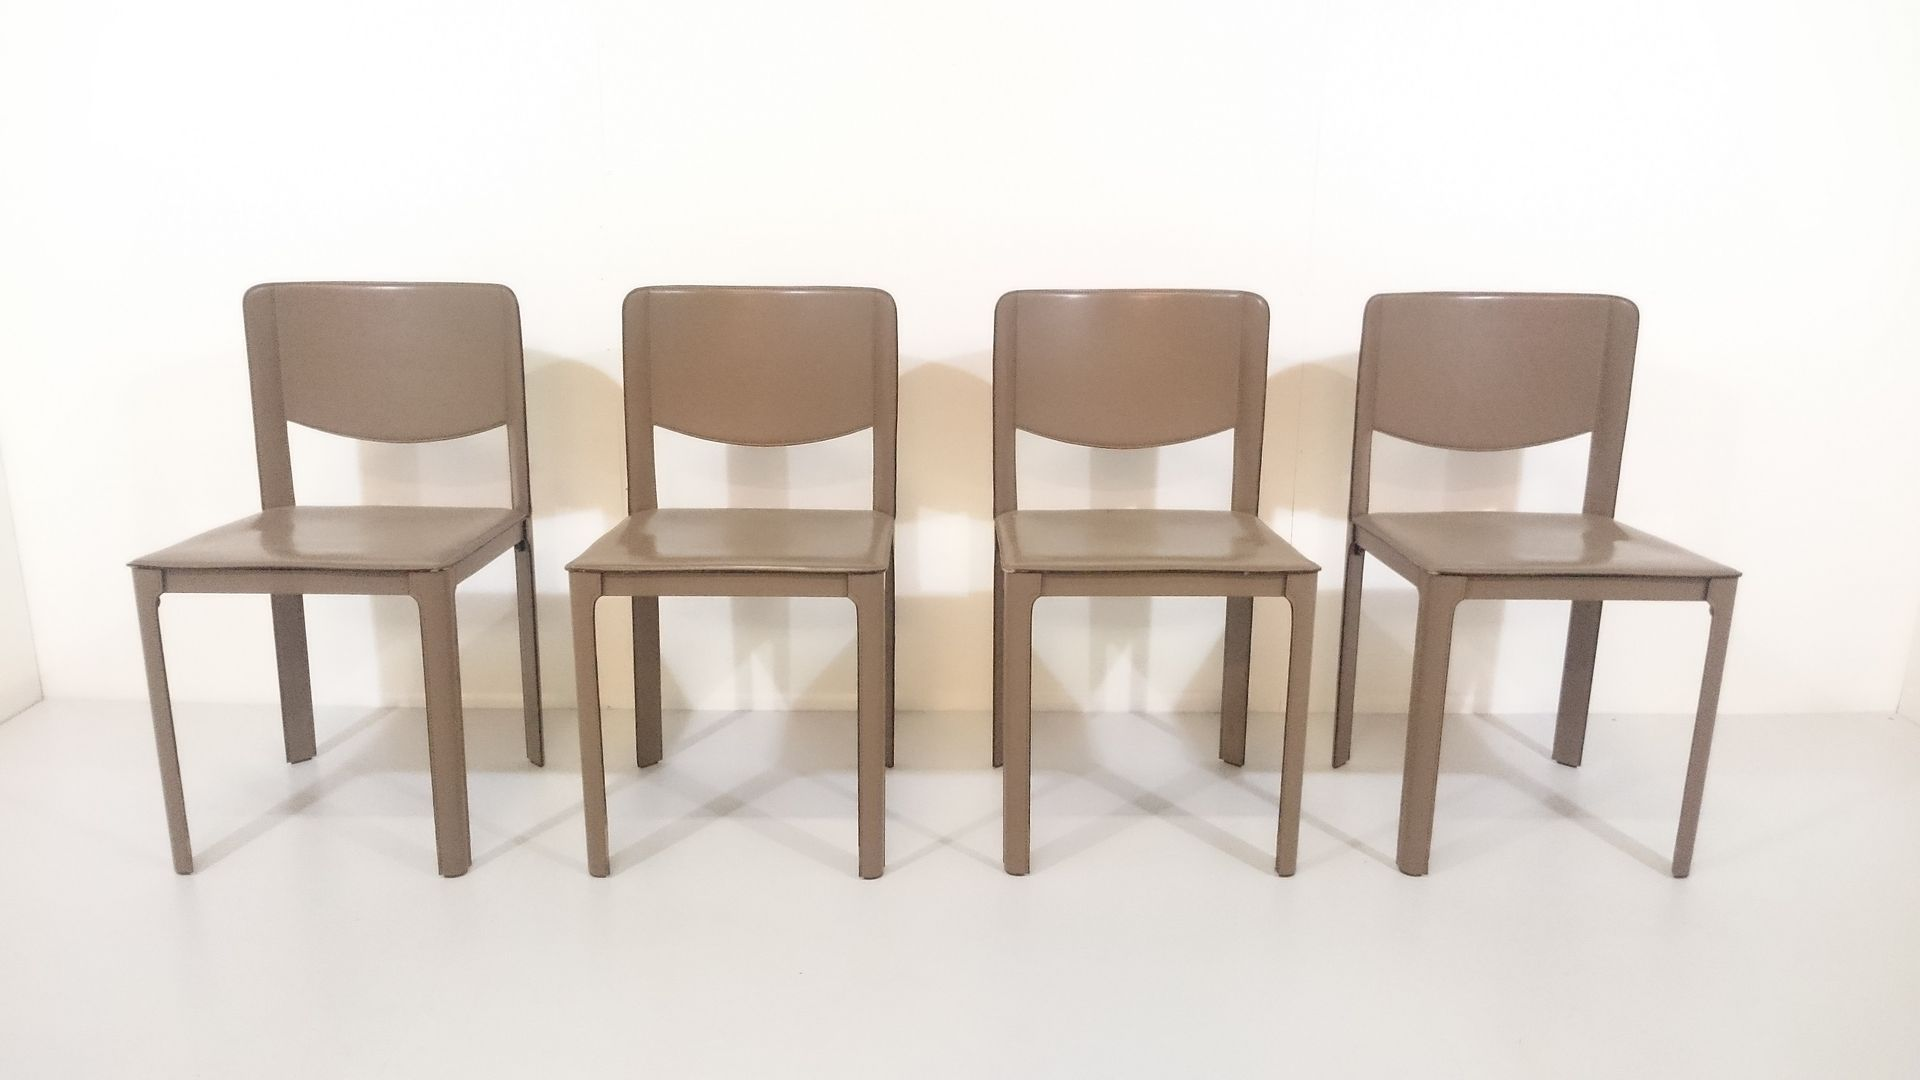 Italian Dining Chairs by Tito Agnoli for Matteo Grassi, 1970s, Set of 4 for sale at Pamono